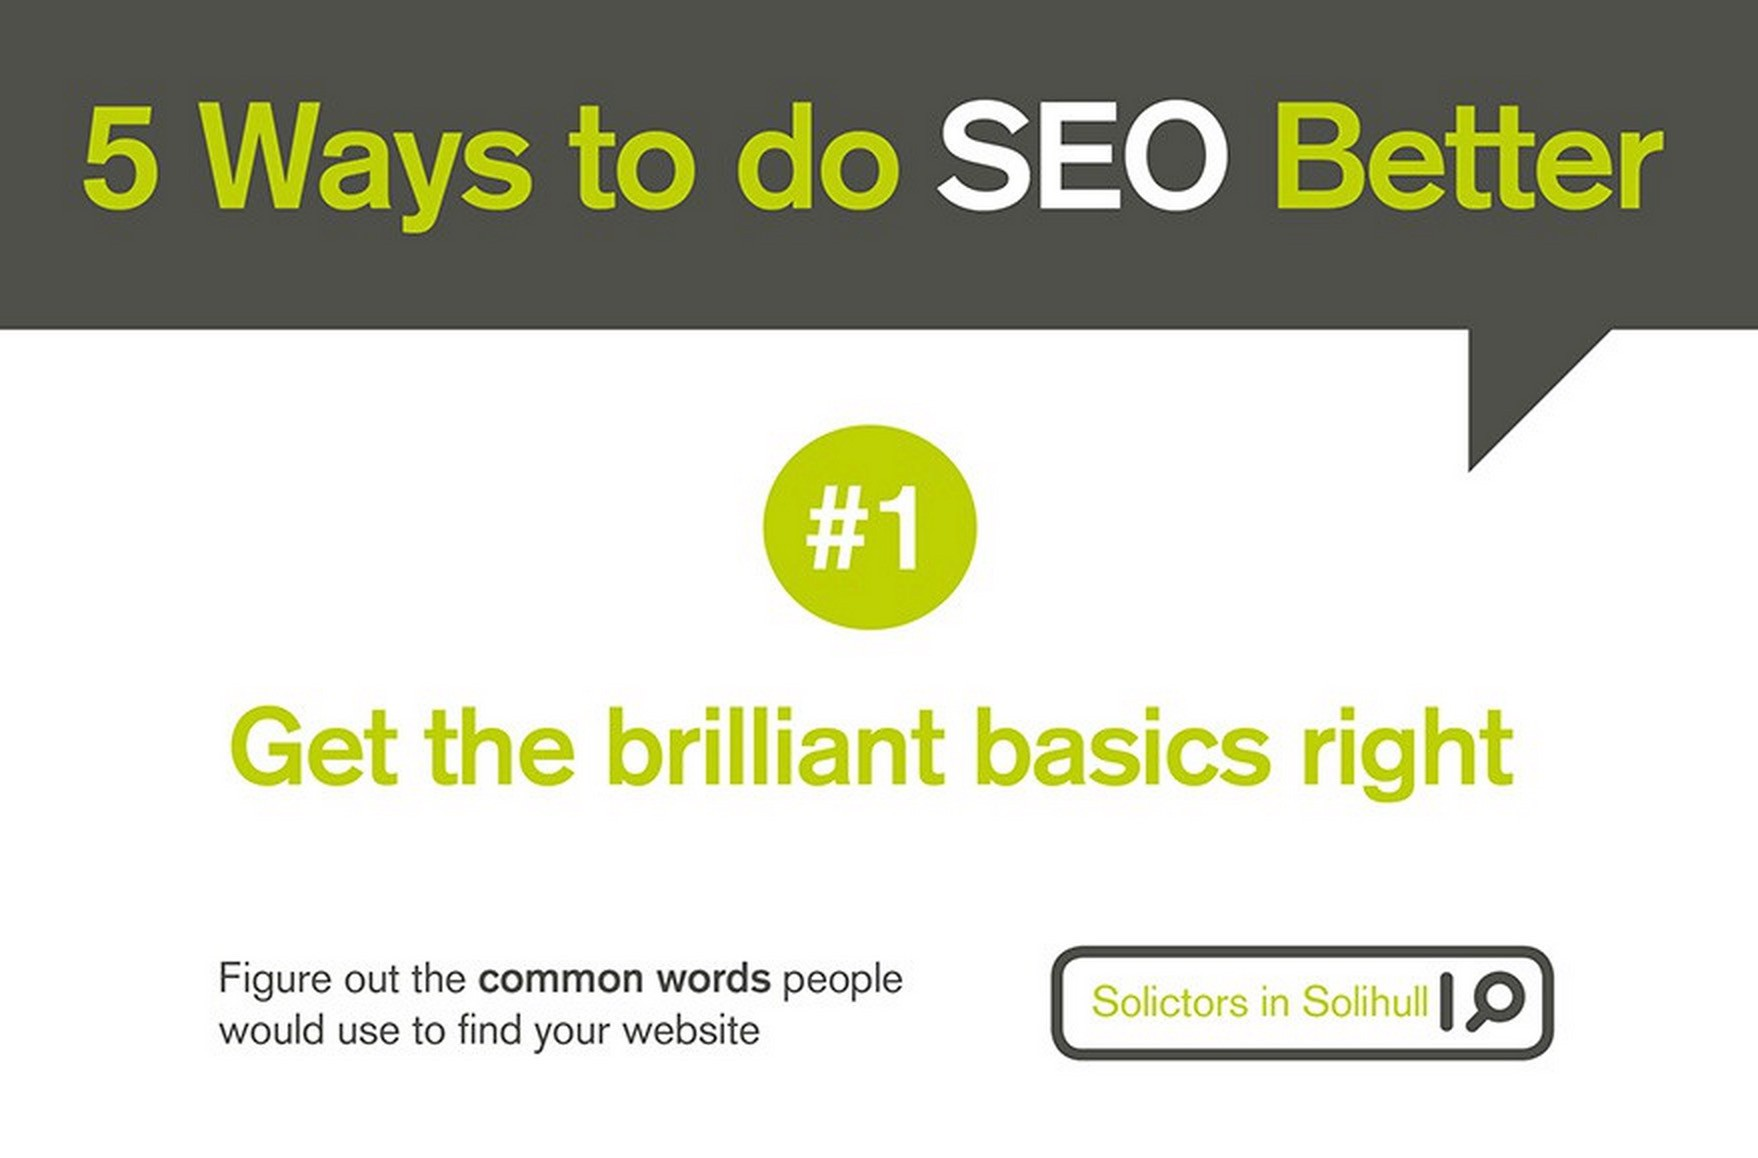 Small Business? Here's 5 Ways You Can Be Better at SEO